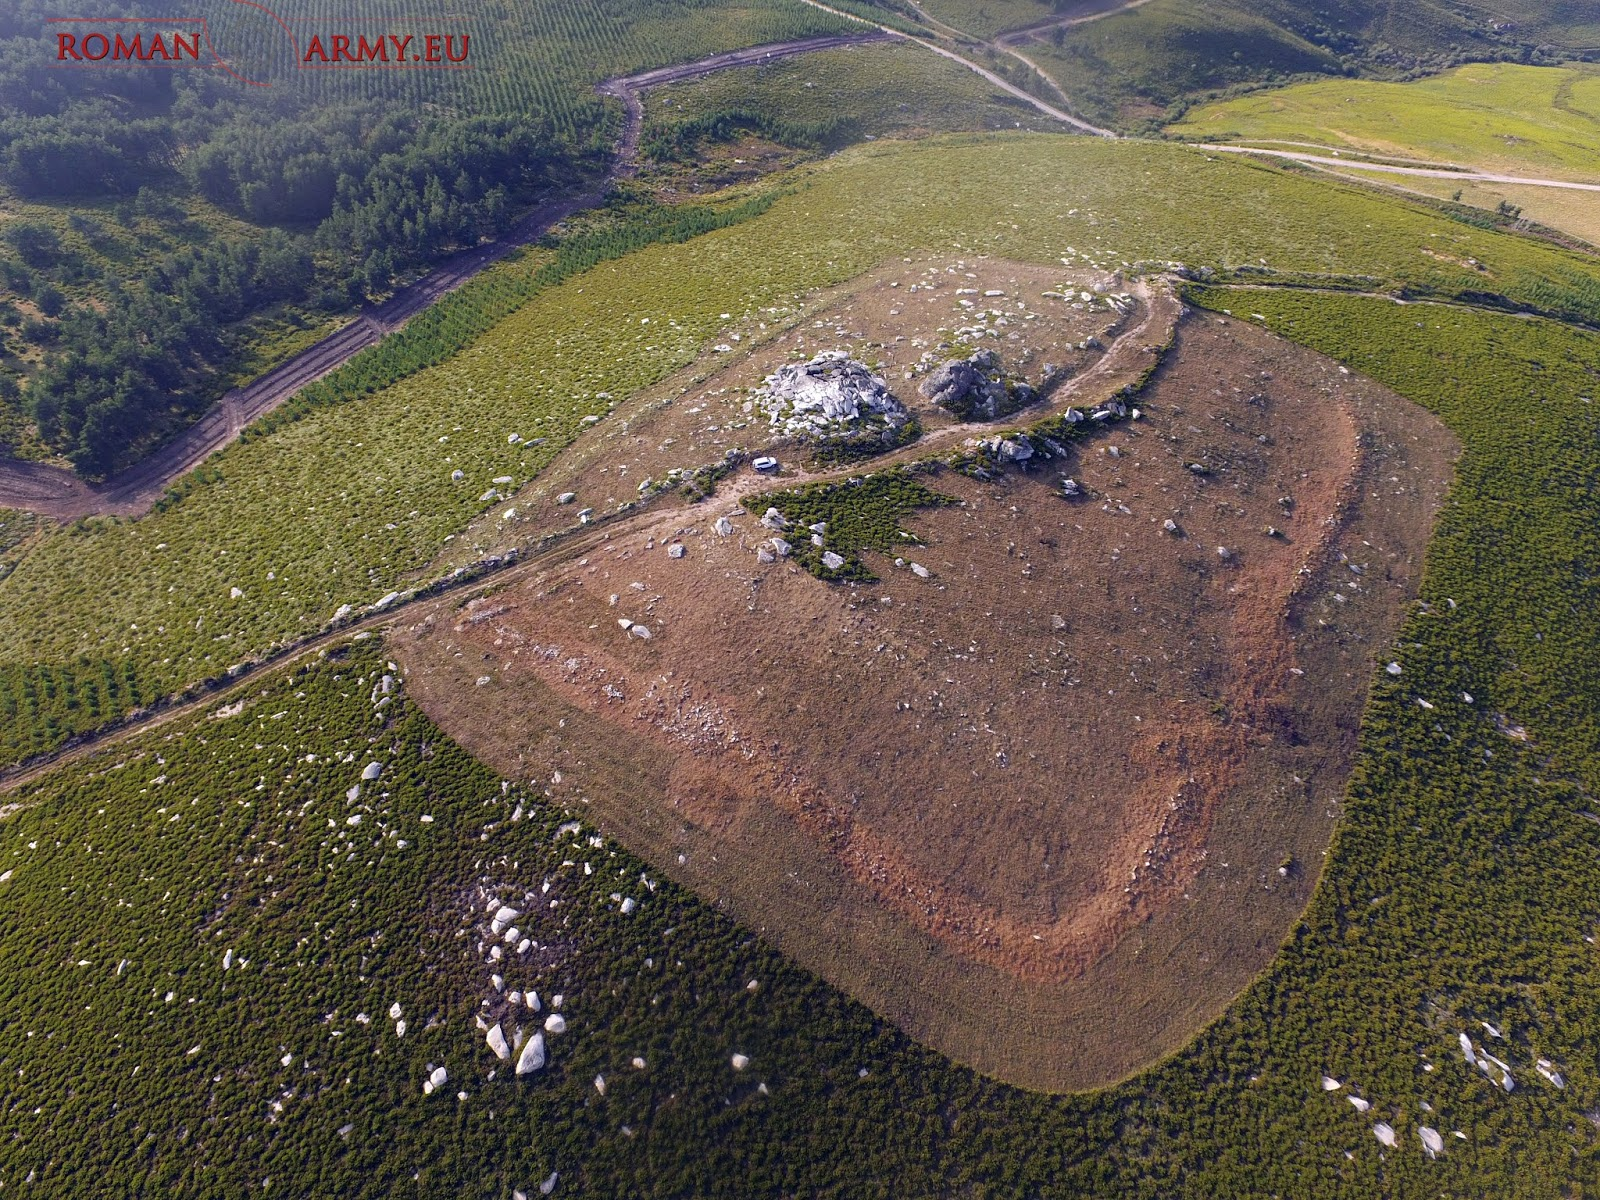 Oldest Roman military camp discovered in NW Iberia | | Space